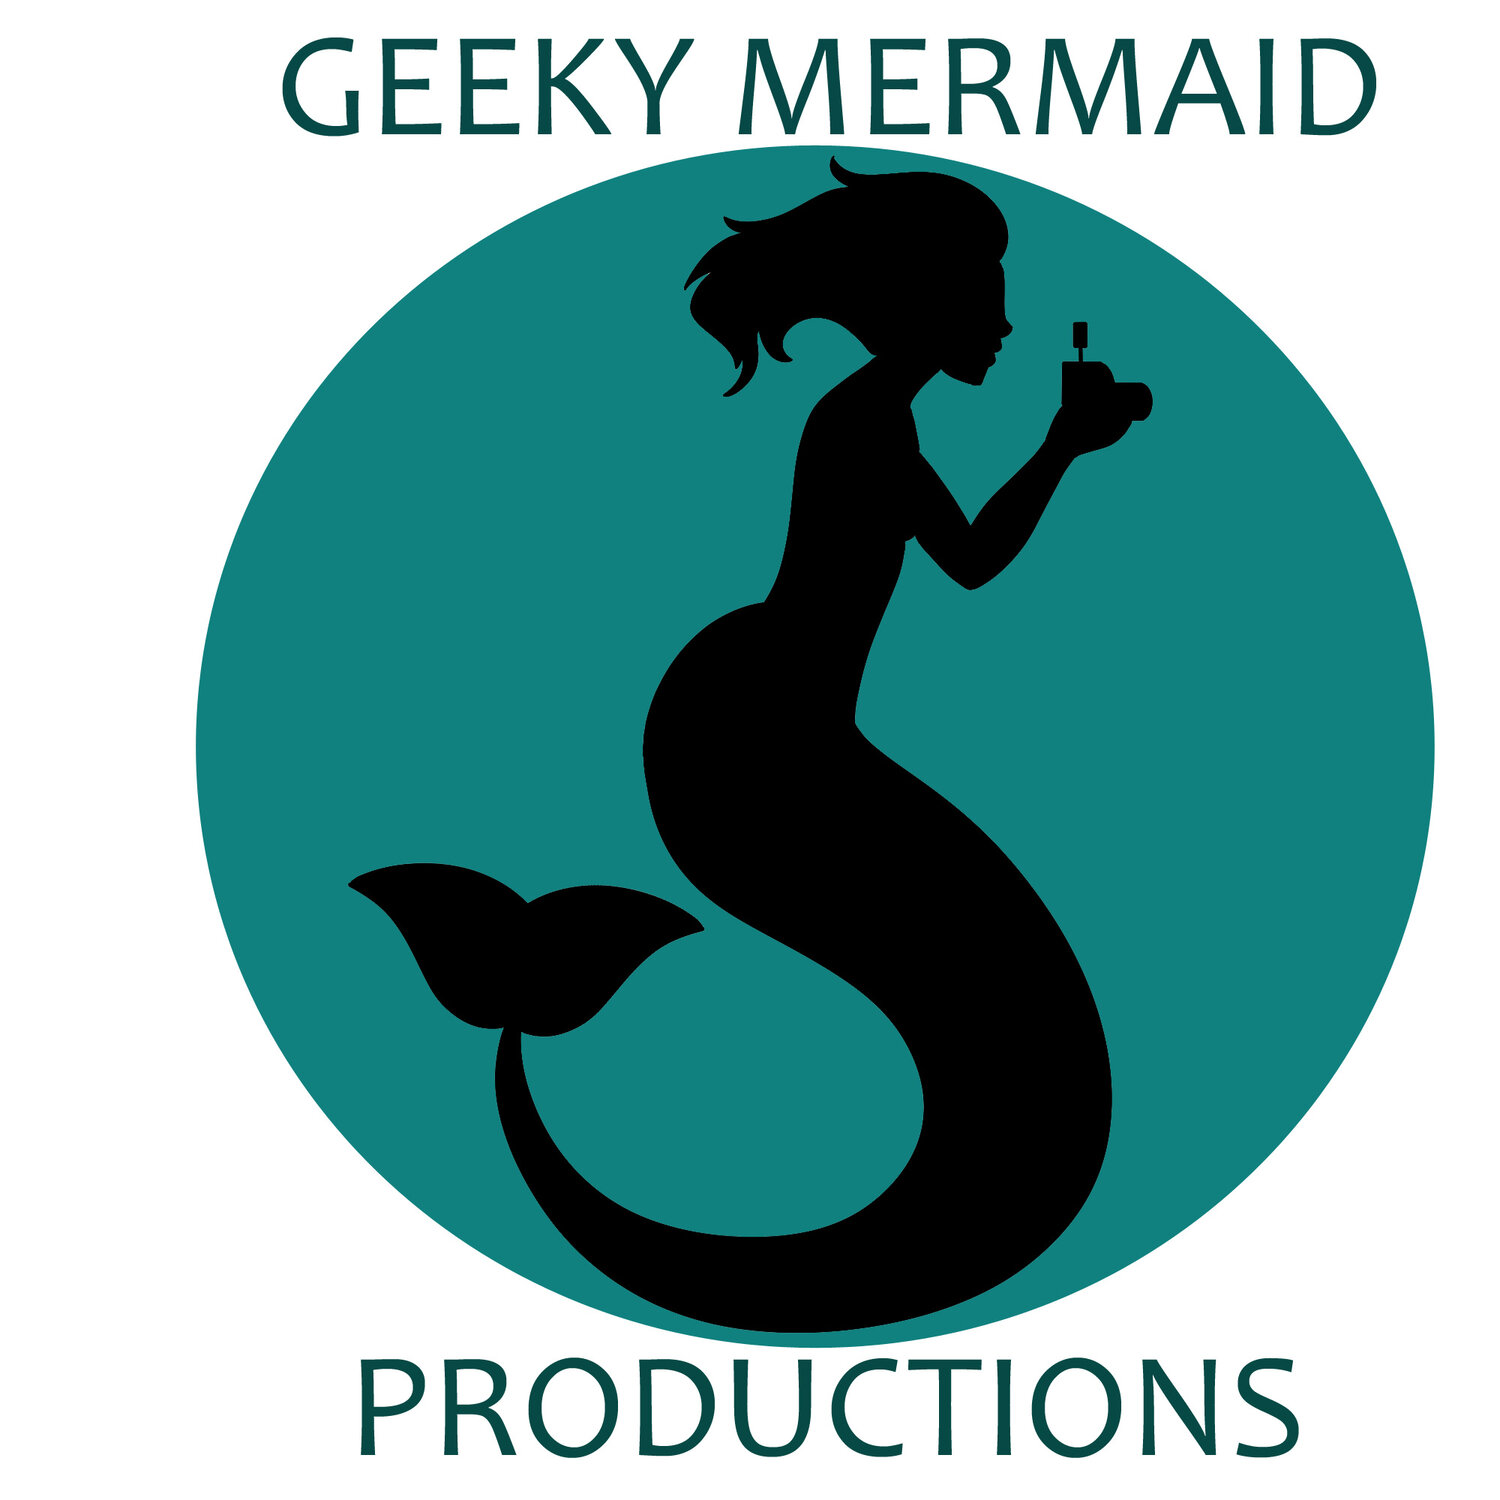 Geeky Mermaid Productions